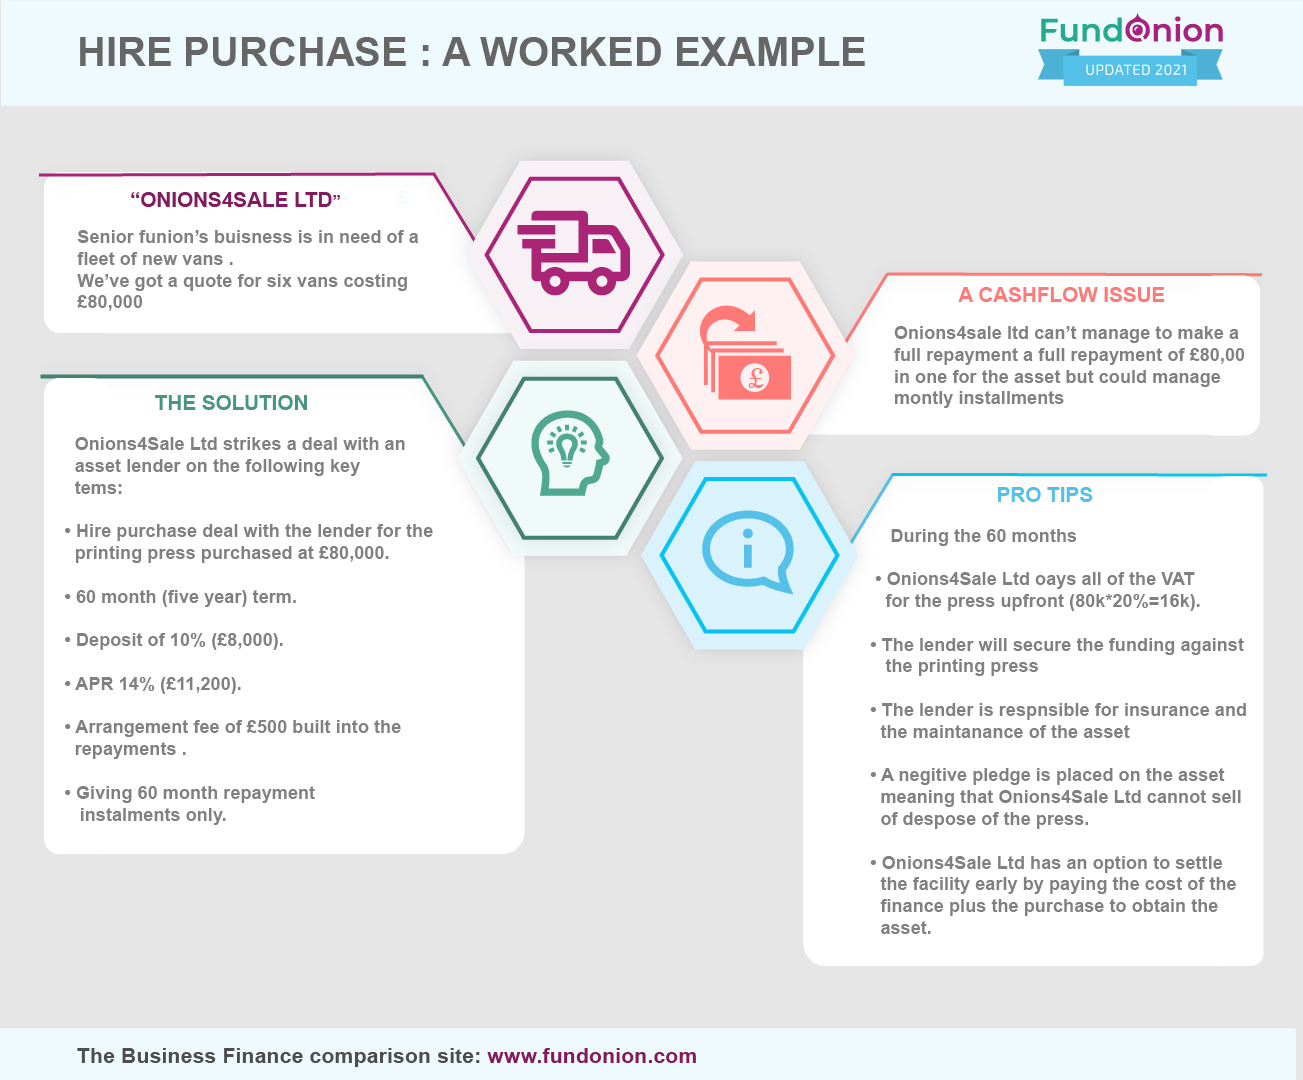 Hire Purchase: A Worked Example_Infographic